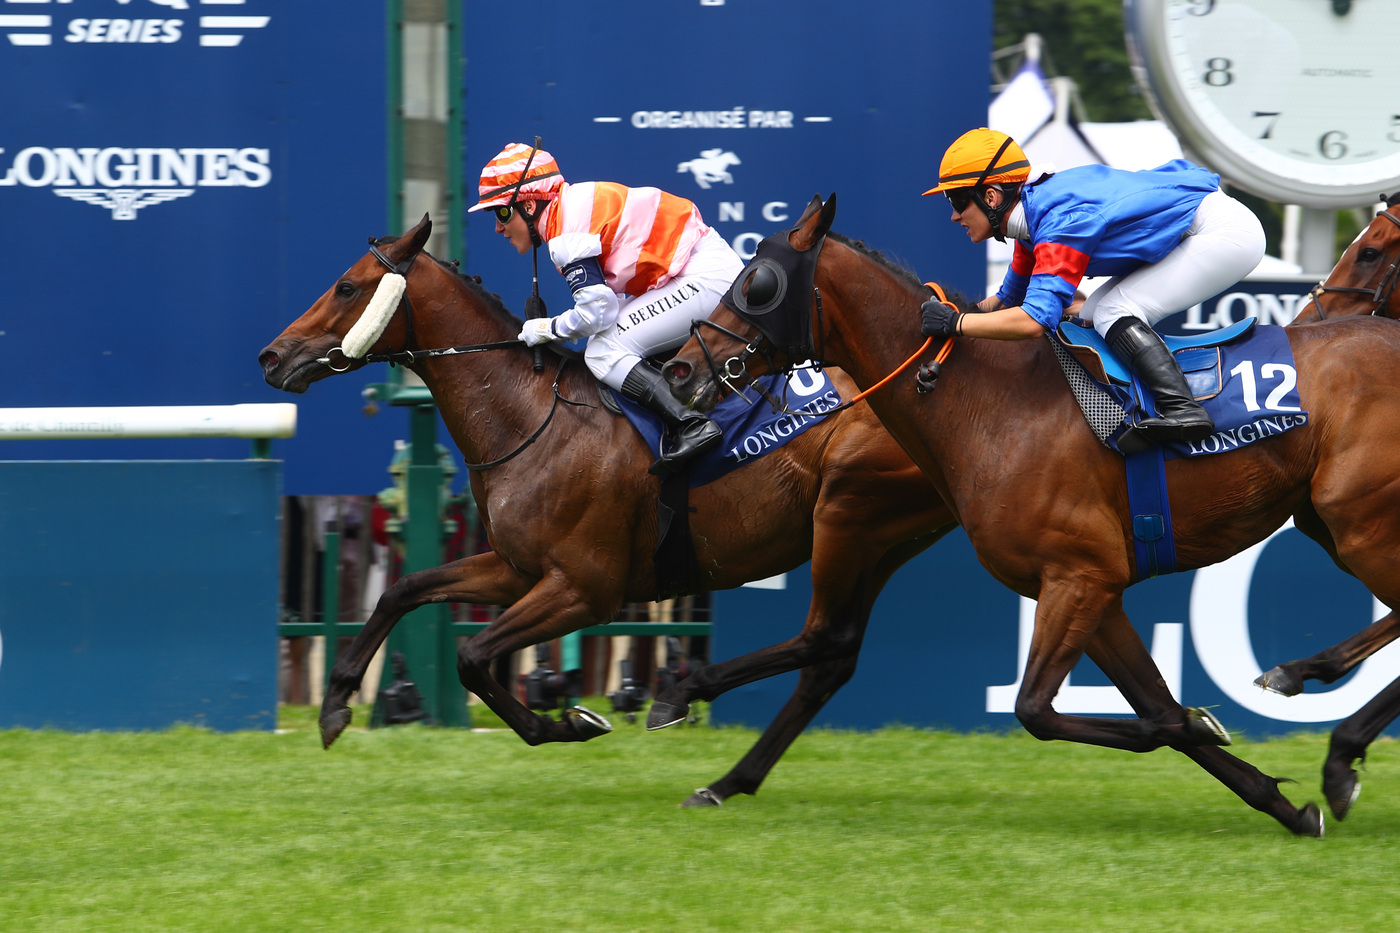 Longines Flat Racing Event: Simon Baker is back for the 2019 edition of the Prix de Diane Longines, the epitome of elegance  2